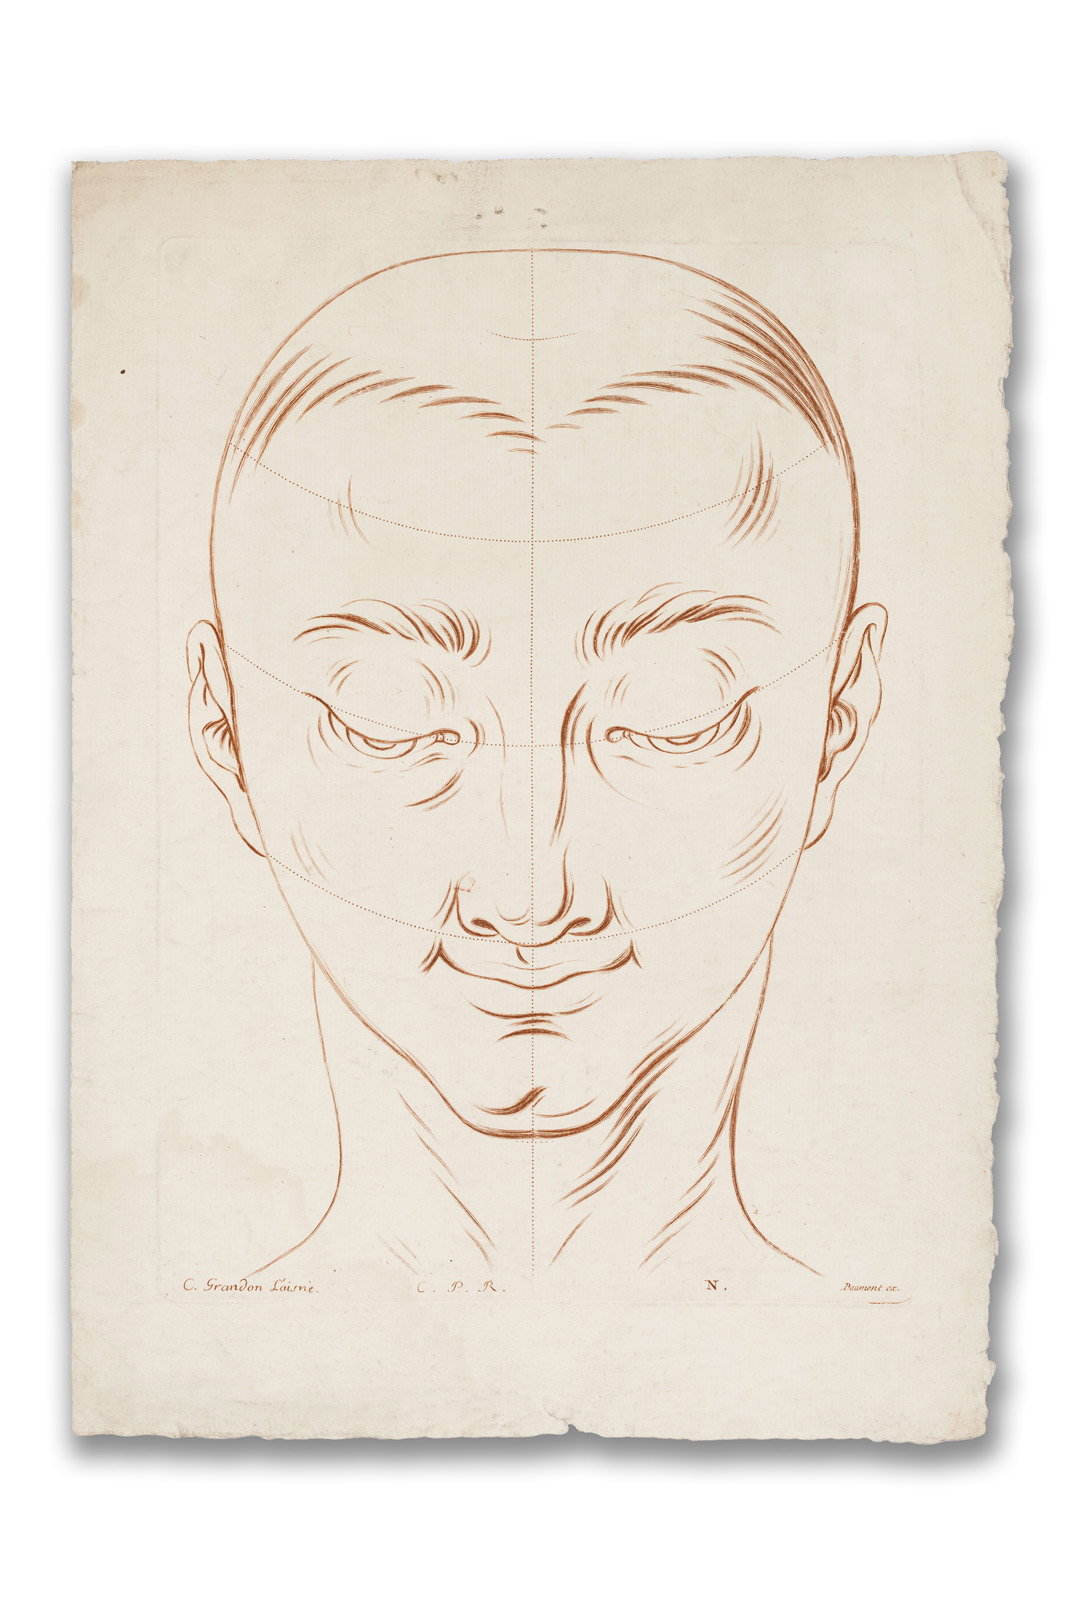 Charles Grandon, (French 1691?-1762), Head of Man with Lines of Construction, 1740.